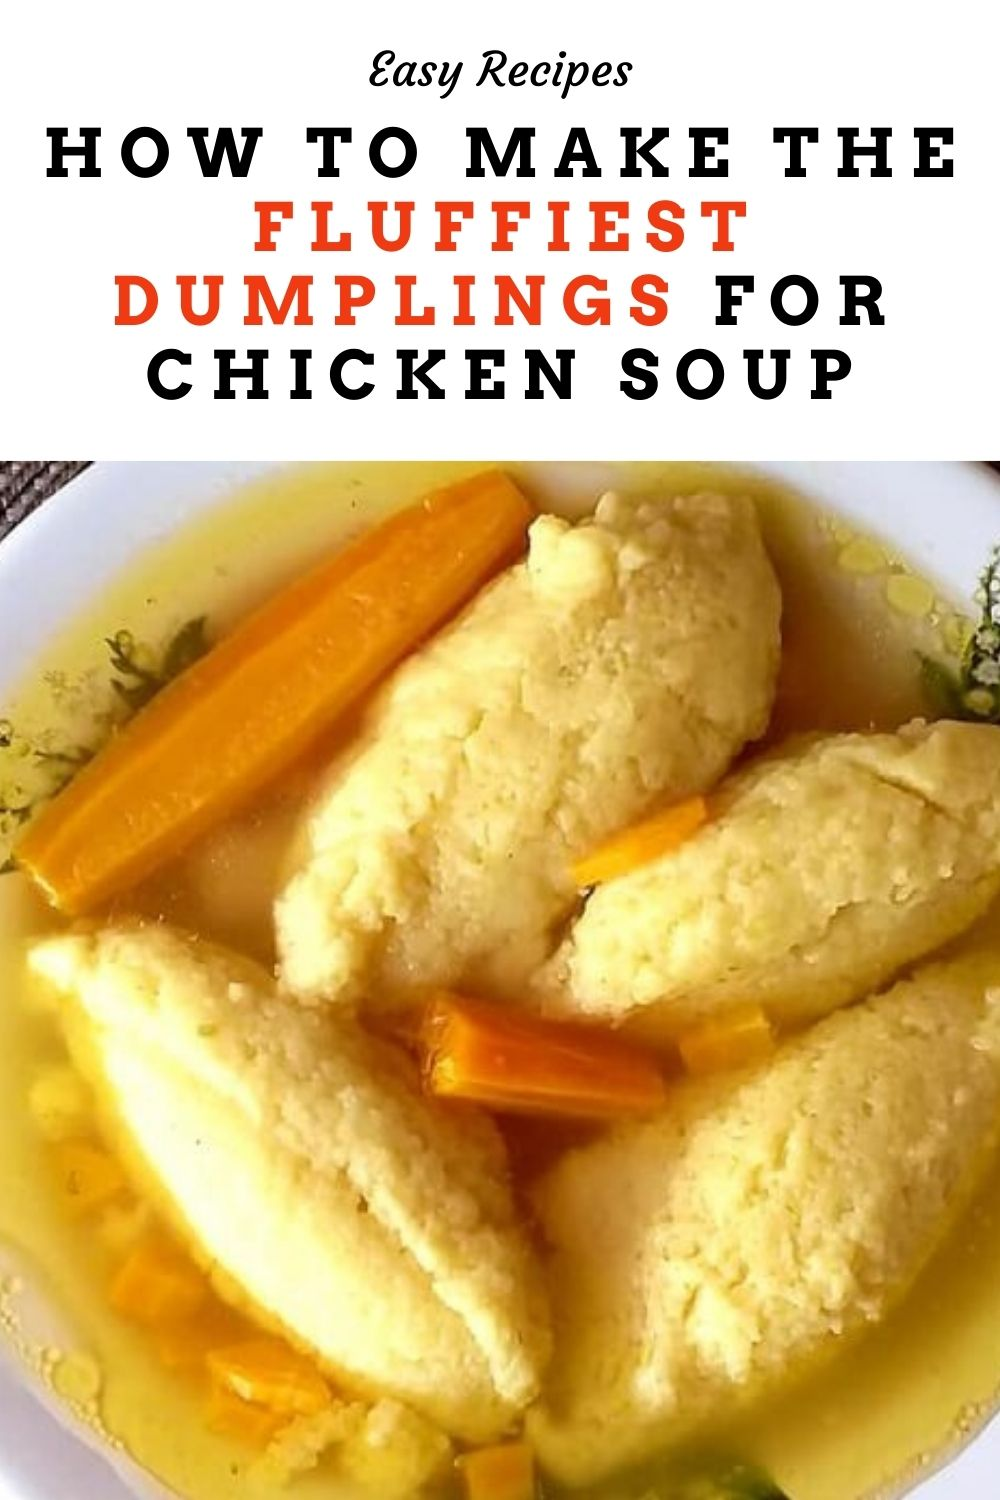 How to make the fluffiest dumplings for chicken soup